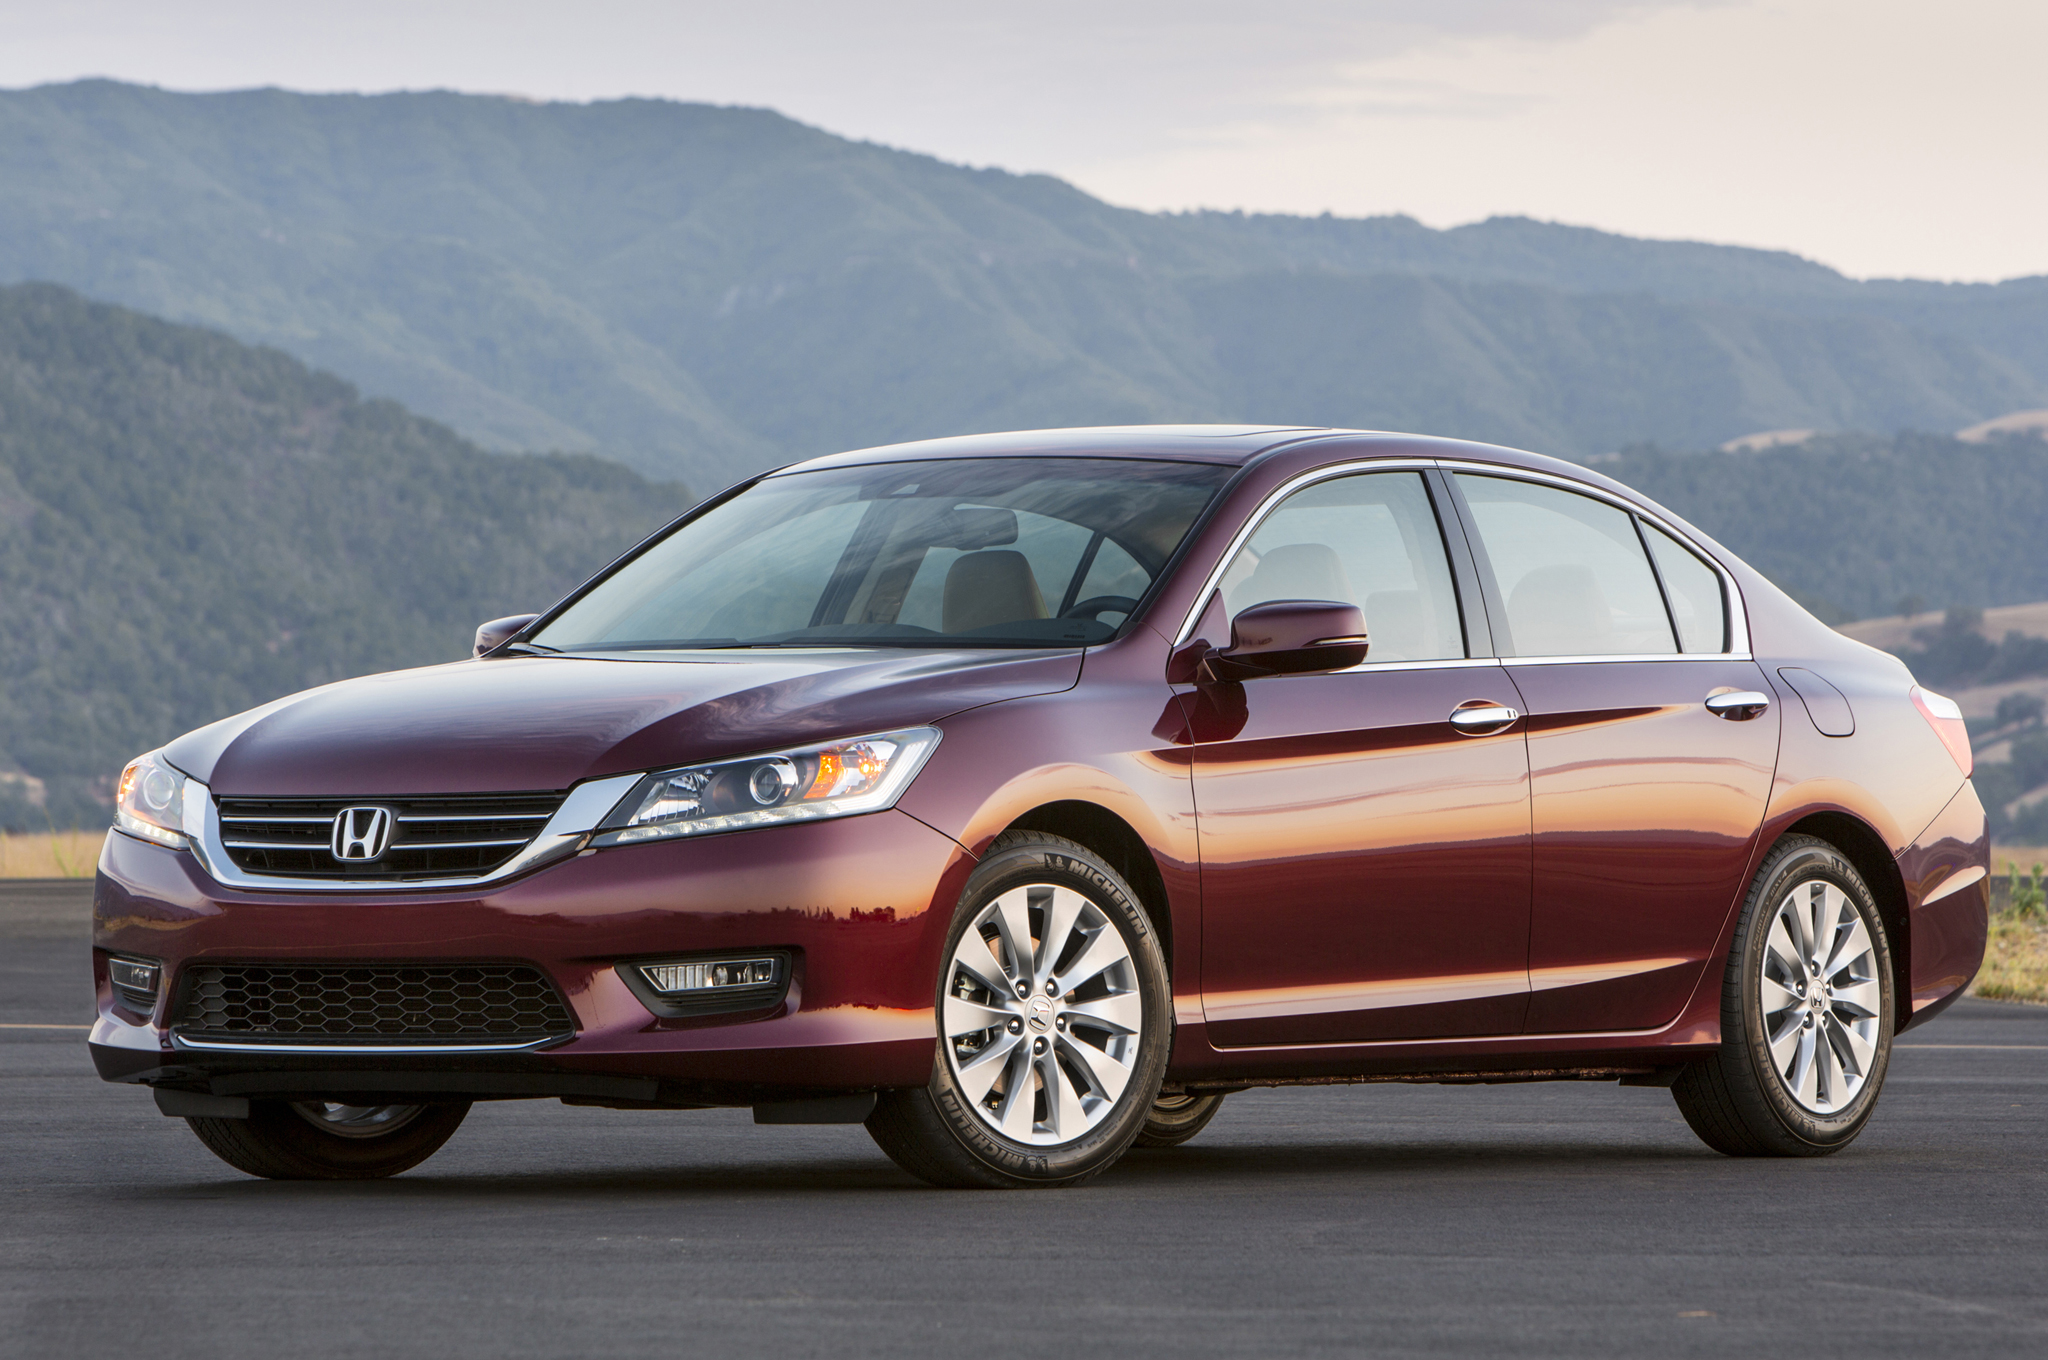 2014 Honda Accord #6